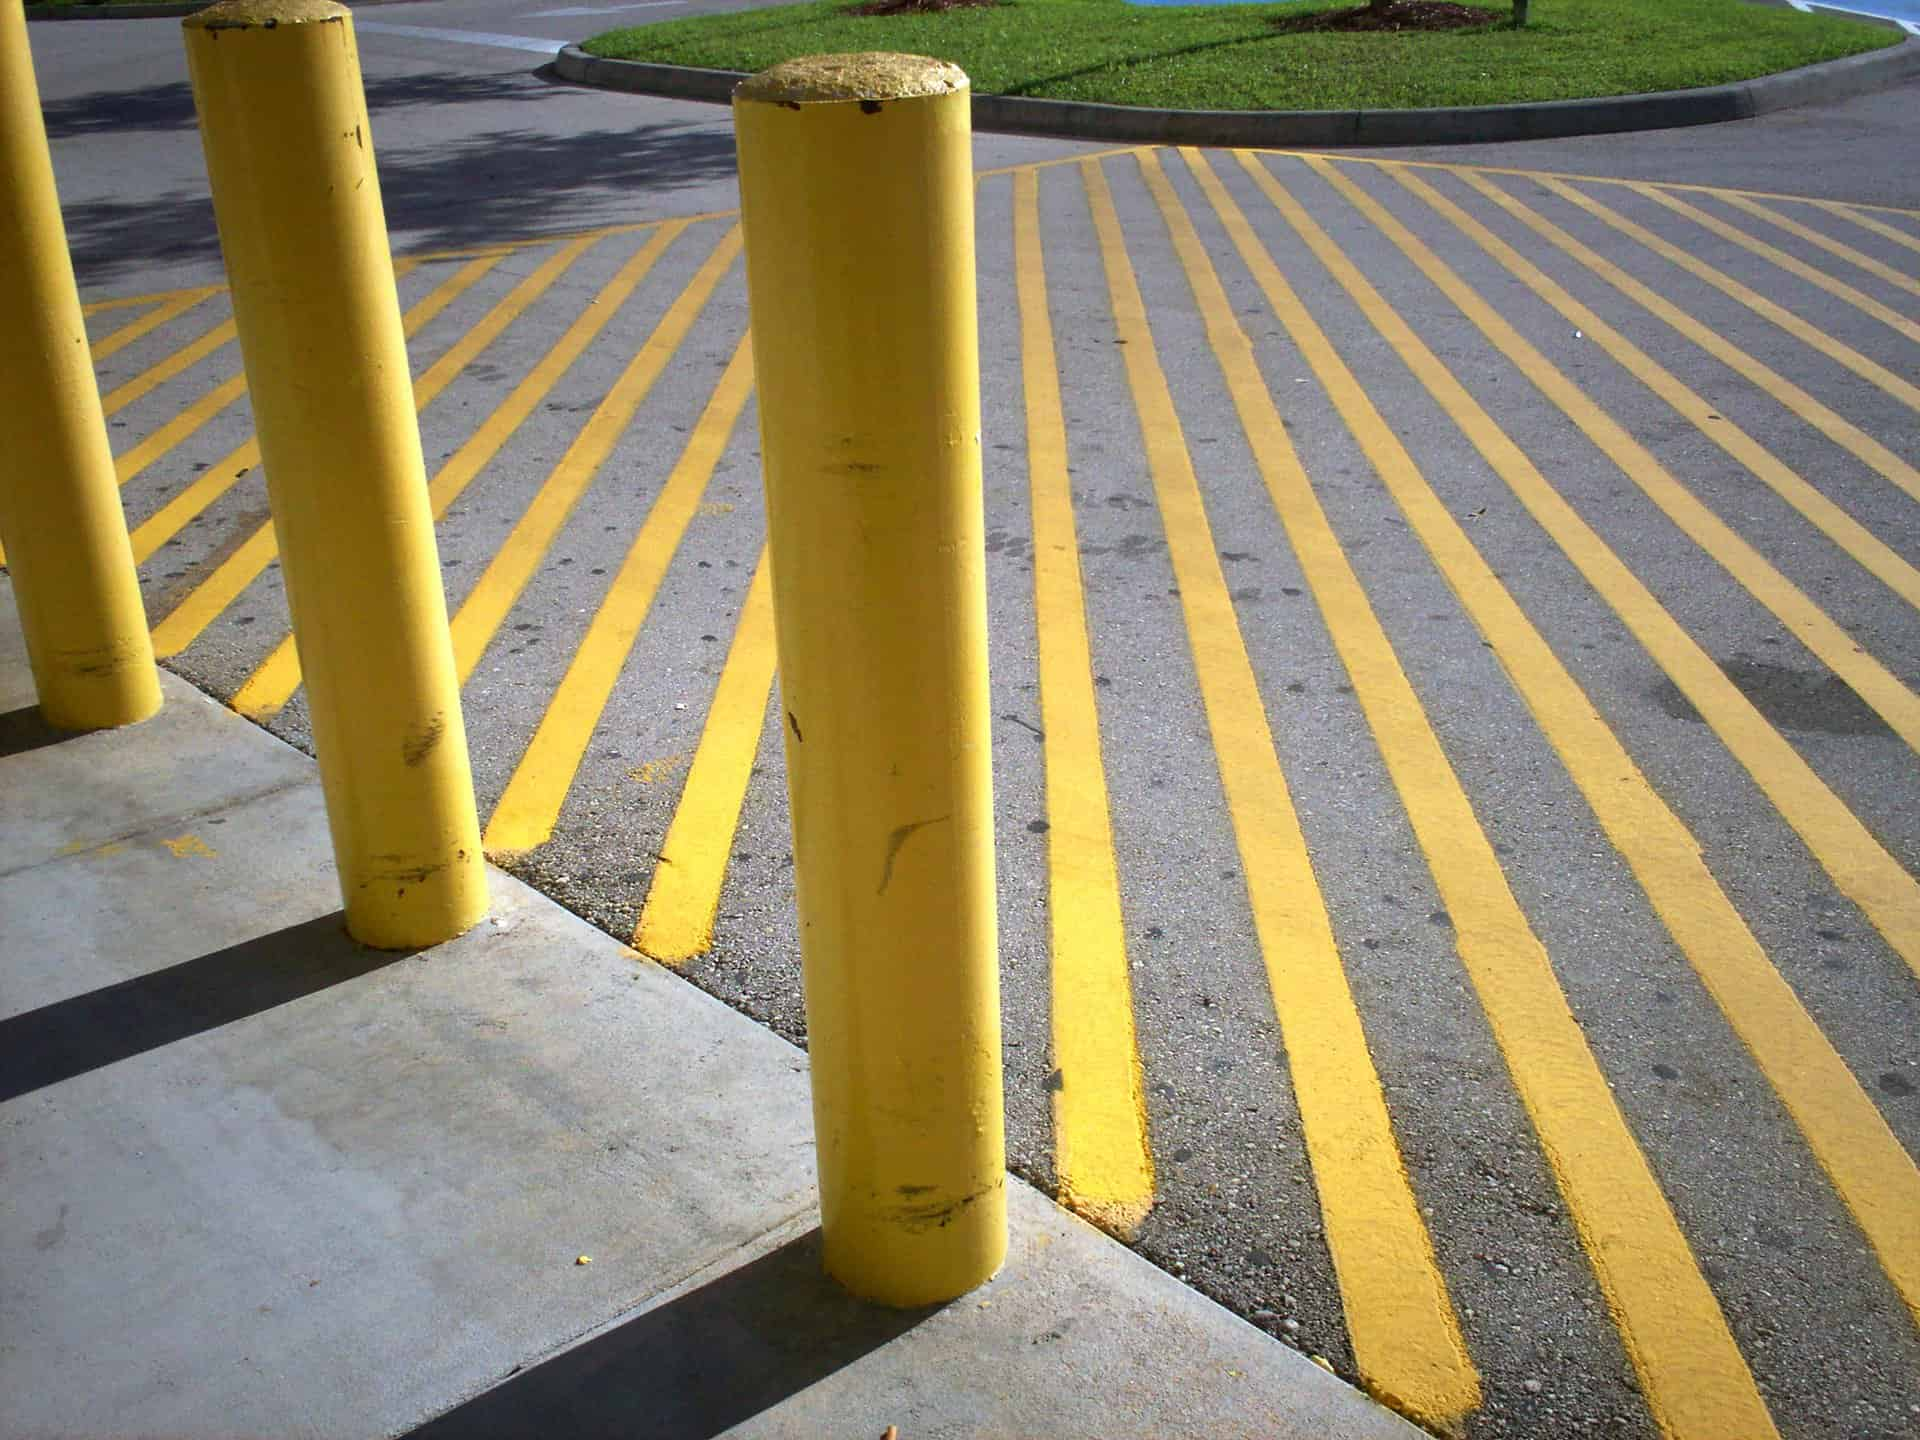 yellow painted lines on concrete in a parking lot with a sidewalk with yellow painted cement posts